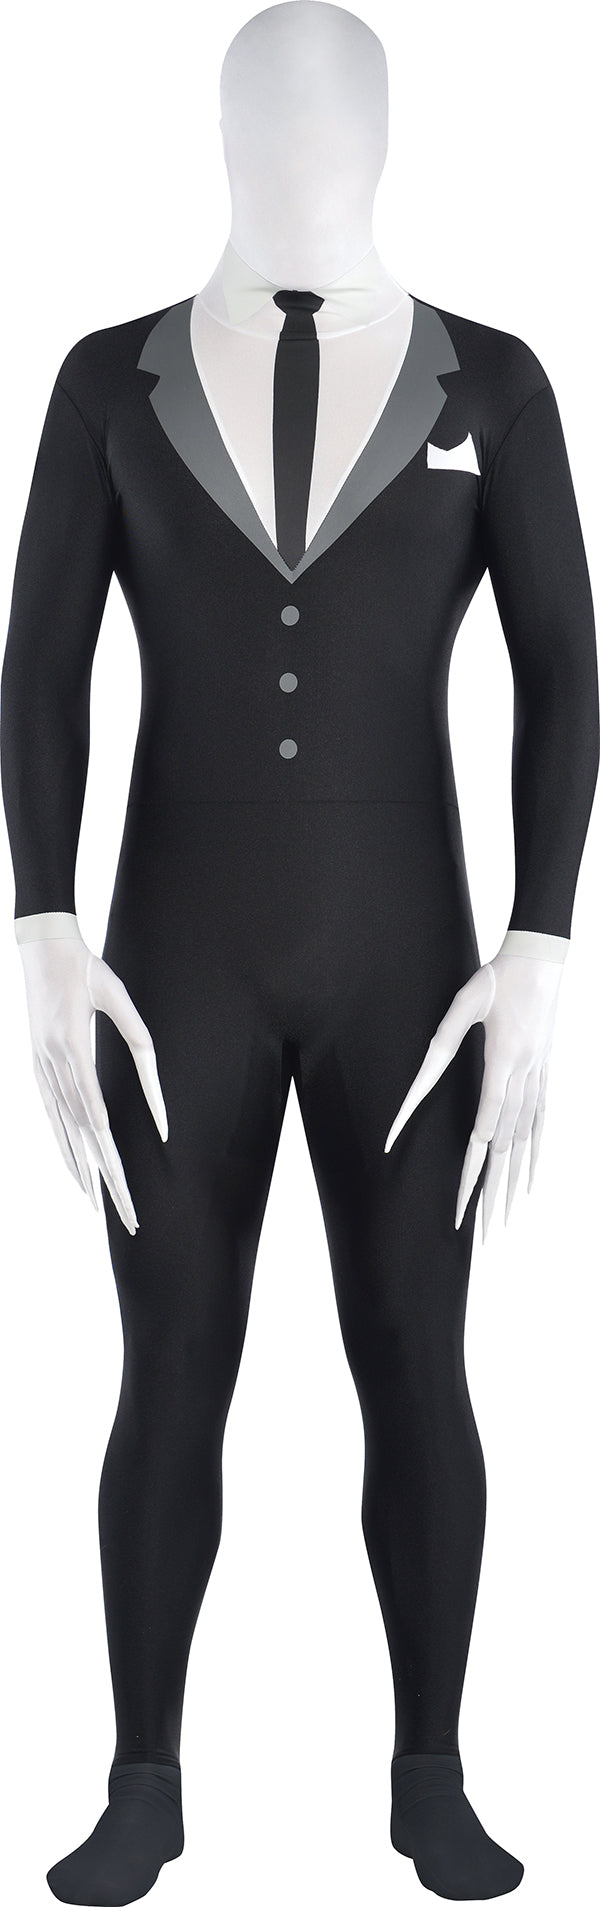 Amscan Adult Slender-Man Party-suit Costume - X-Large (Fits up to 6'3), Black